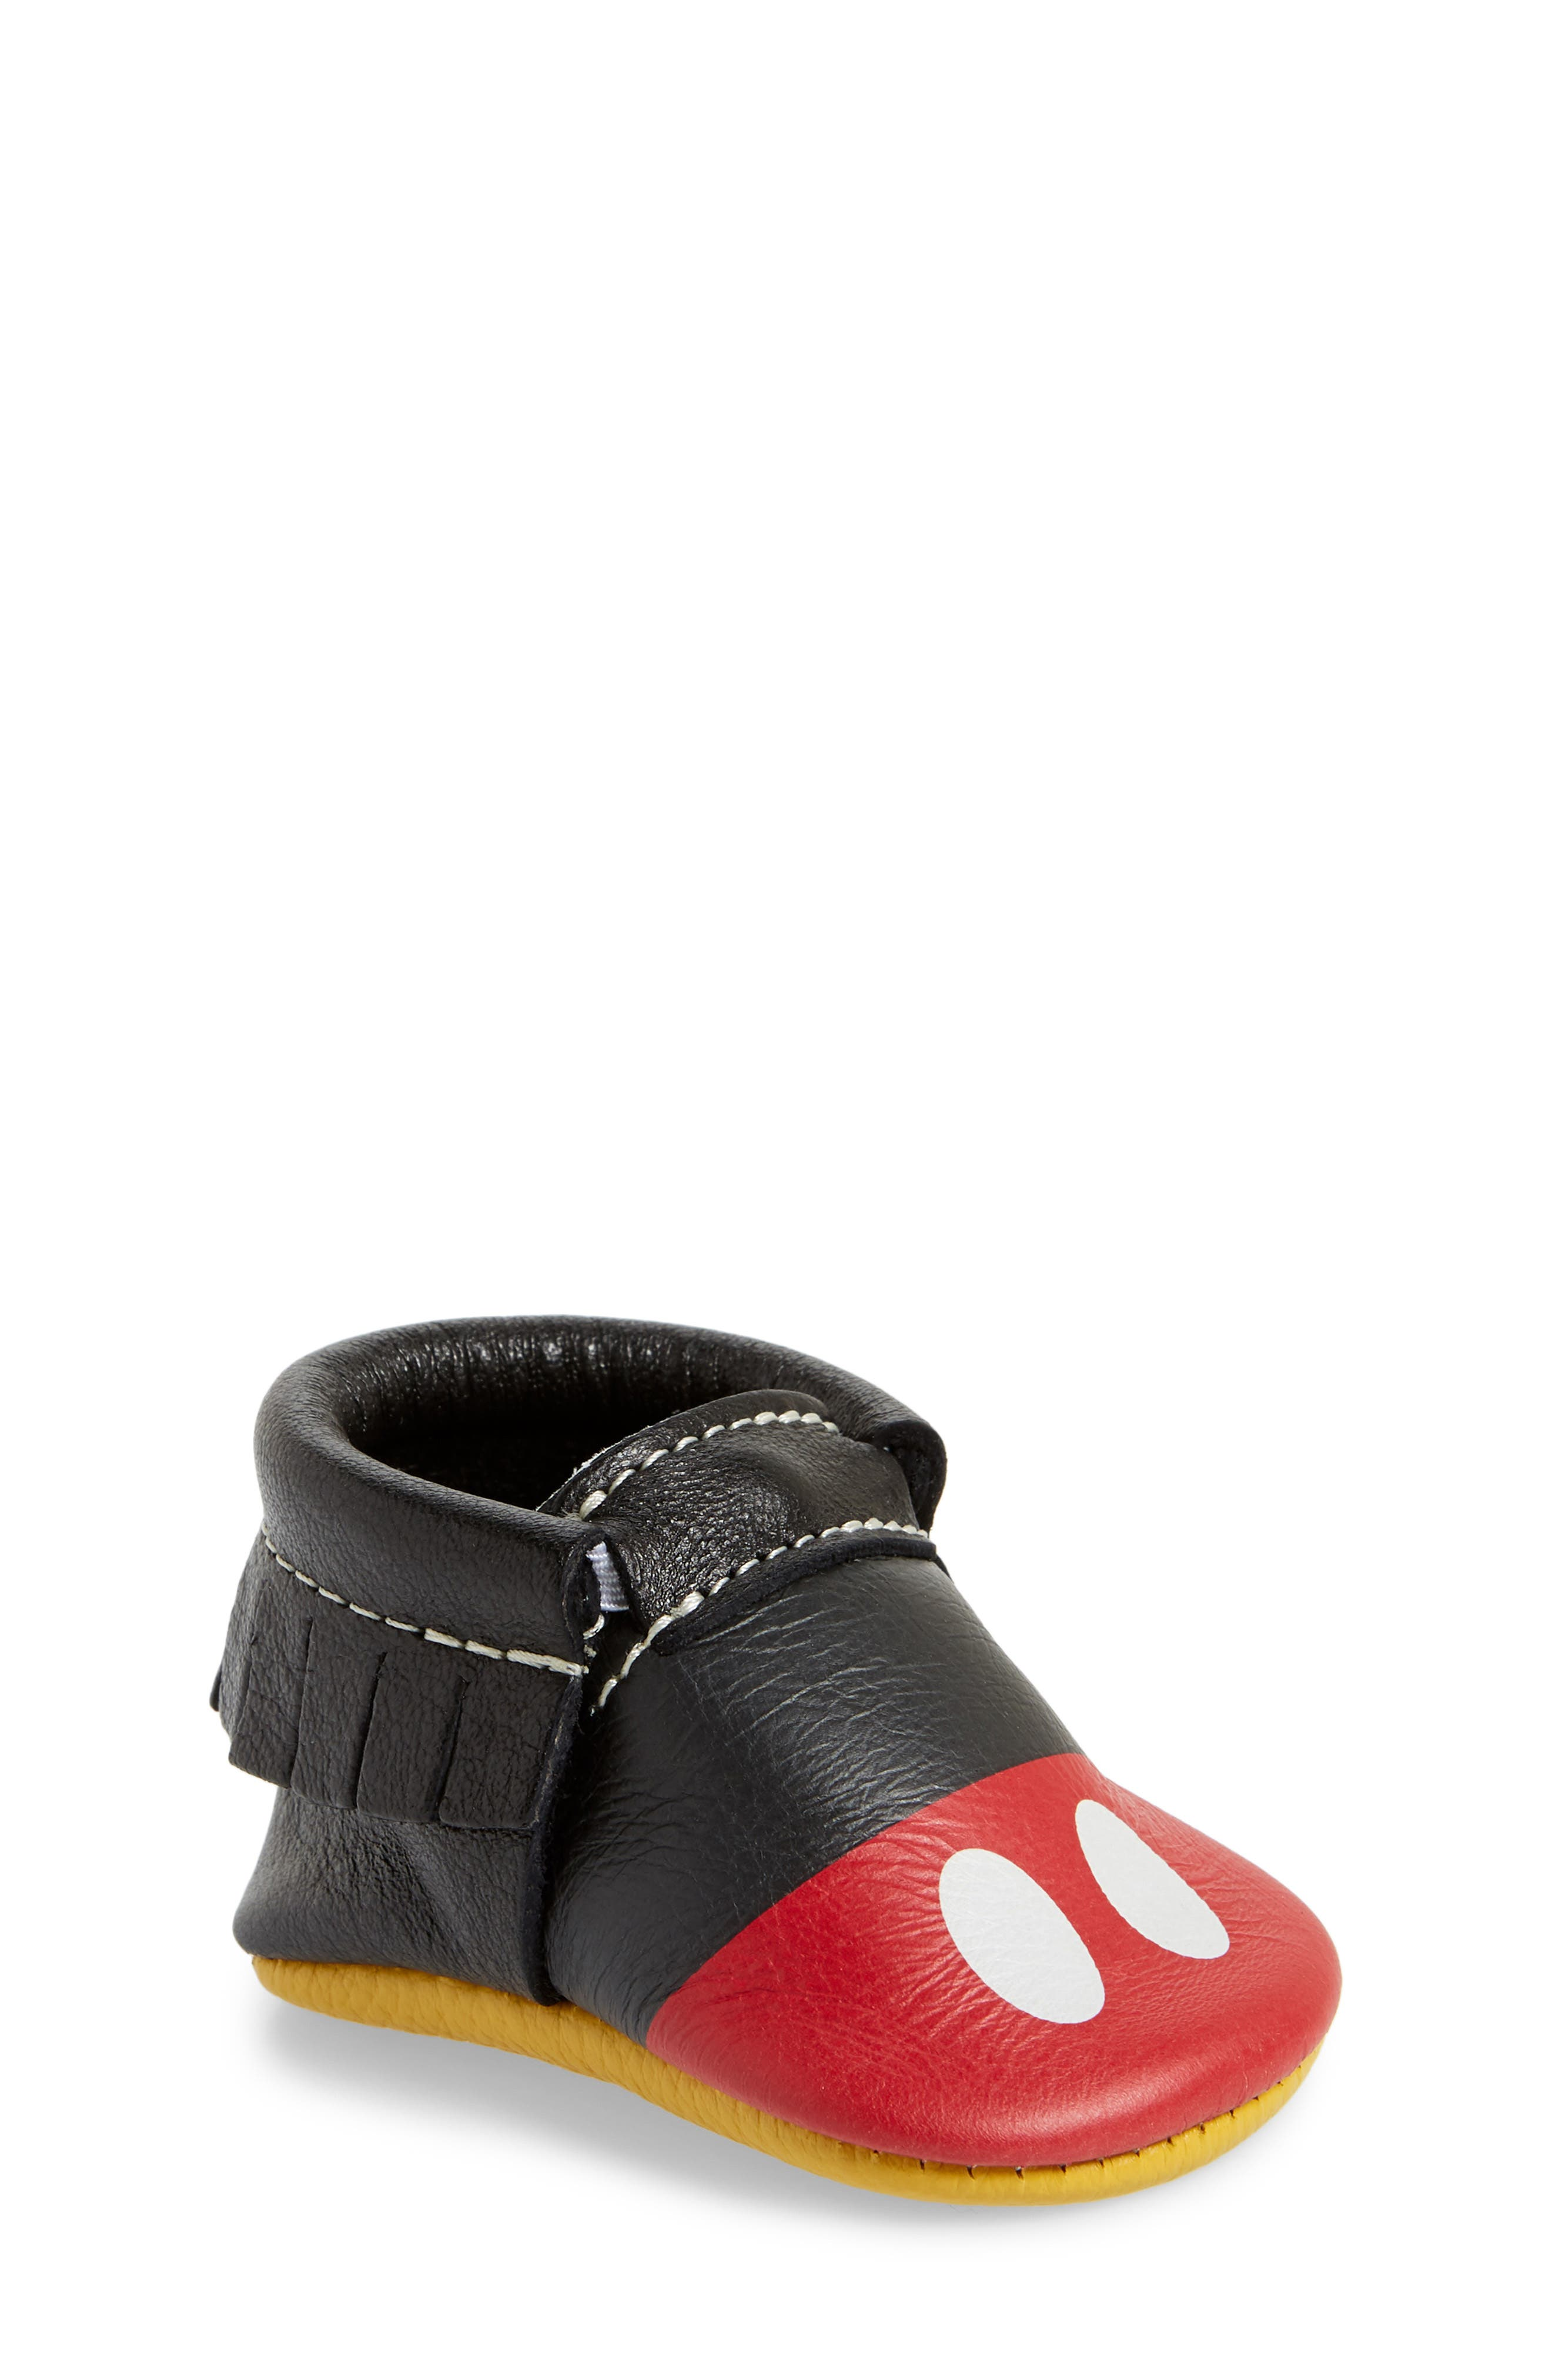 x Disney<sup>®</sup> Baby Mickey Mousee Crib Moccasin,                         Main,                         color, 001